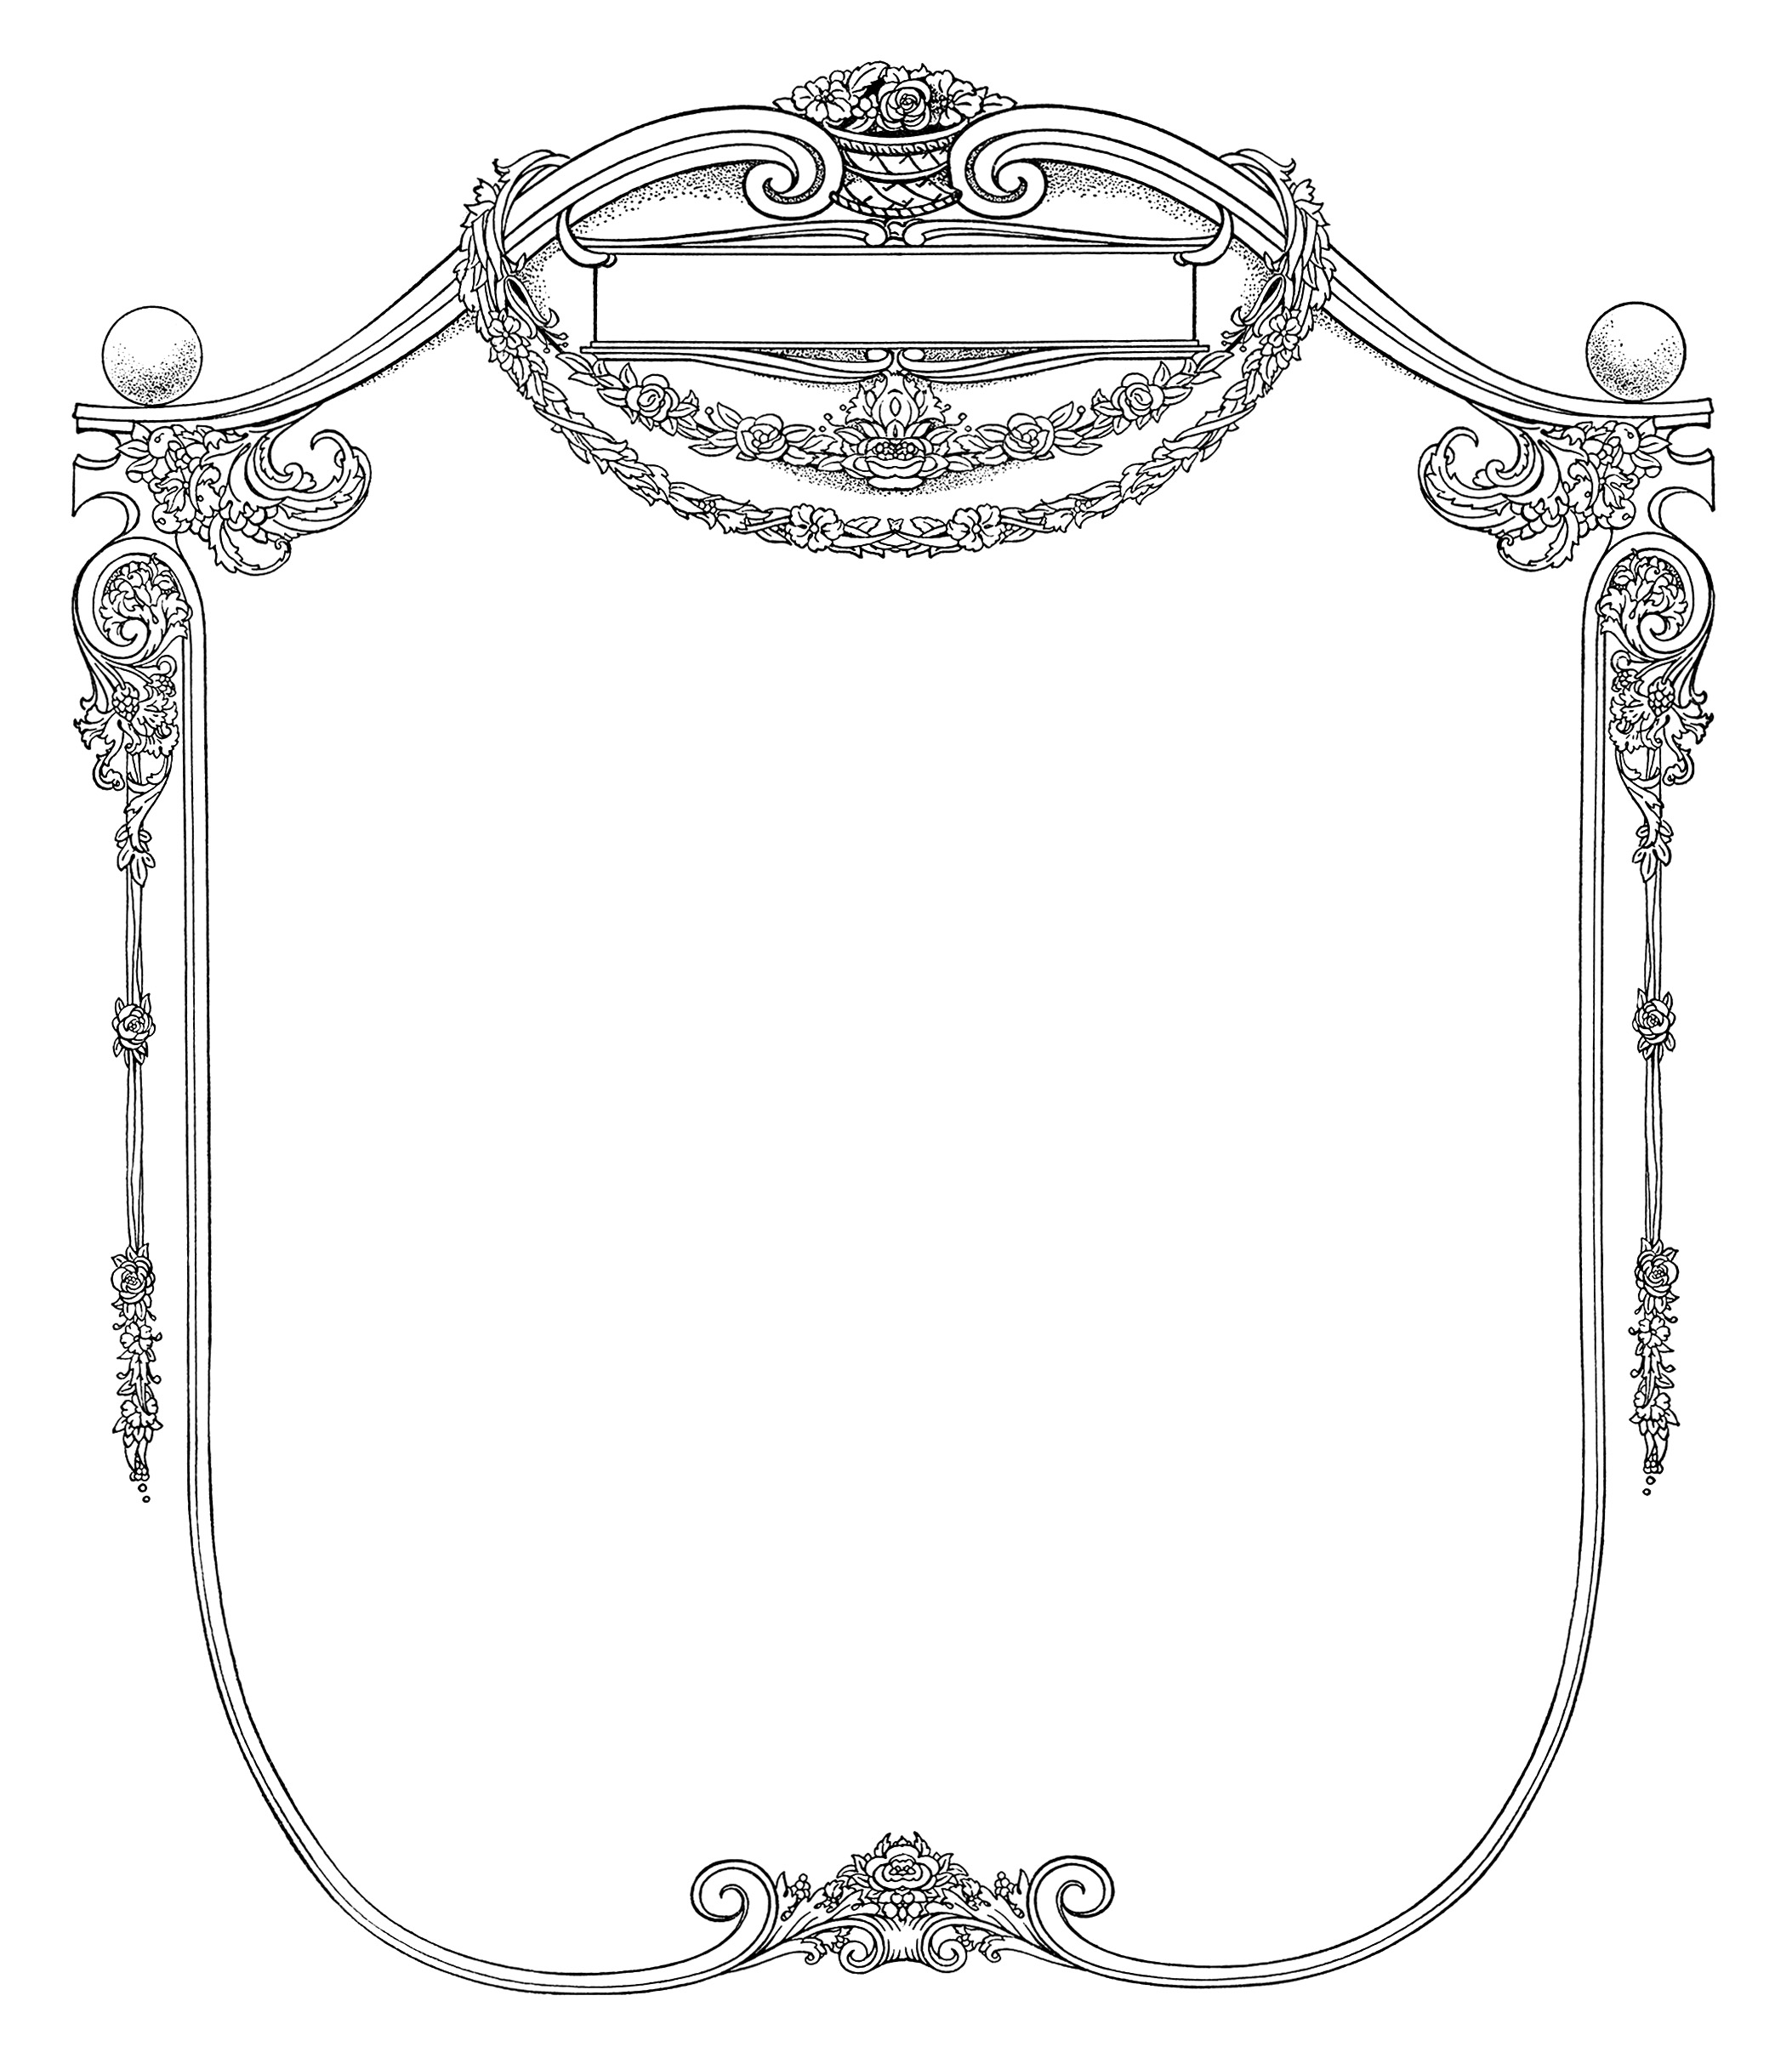 Free download frame cliparts graphic Frame clipart images download free download clipart - Cliparting.com graphic